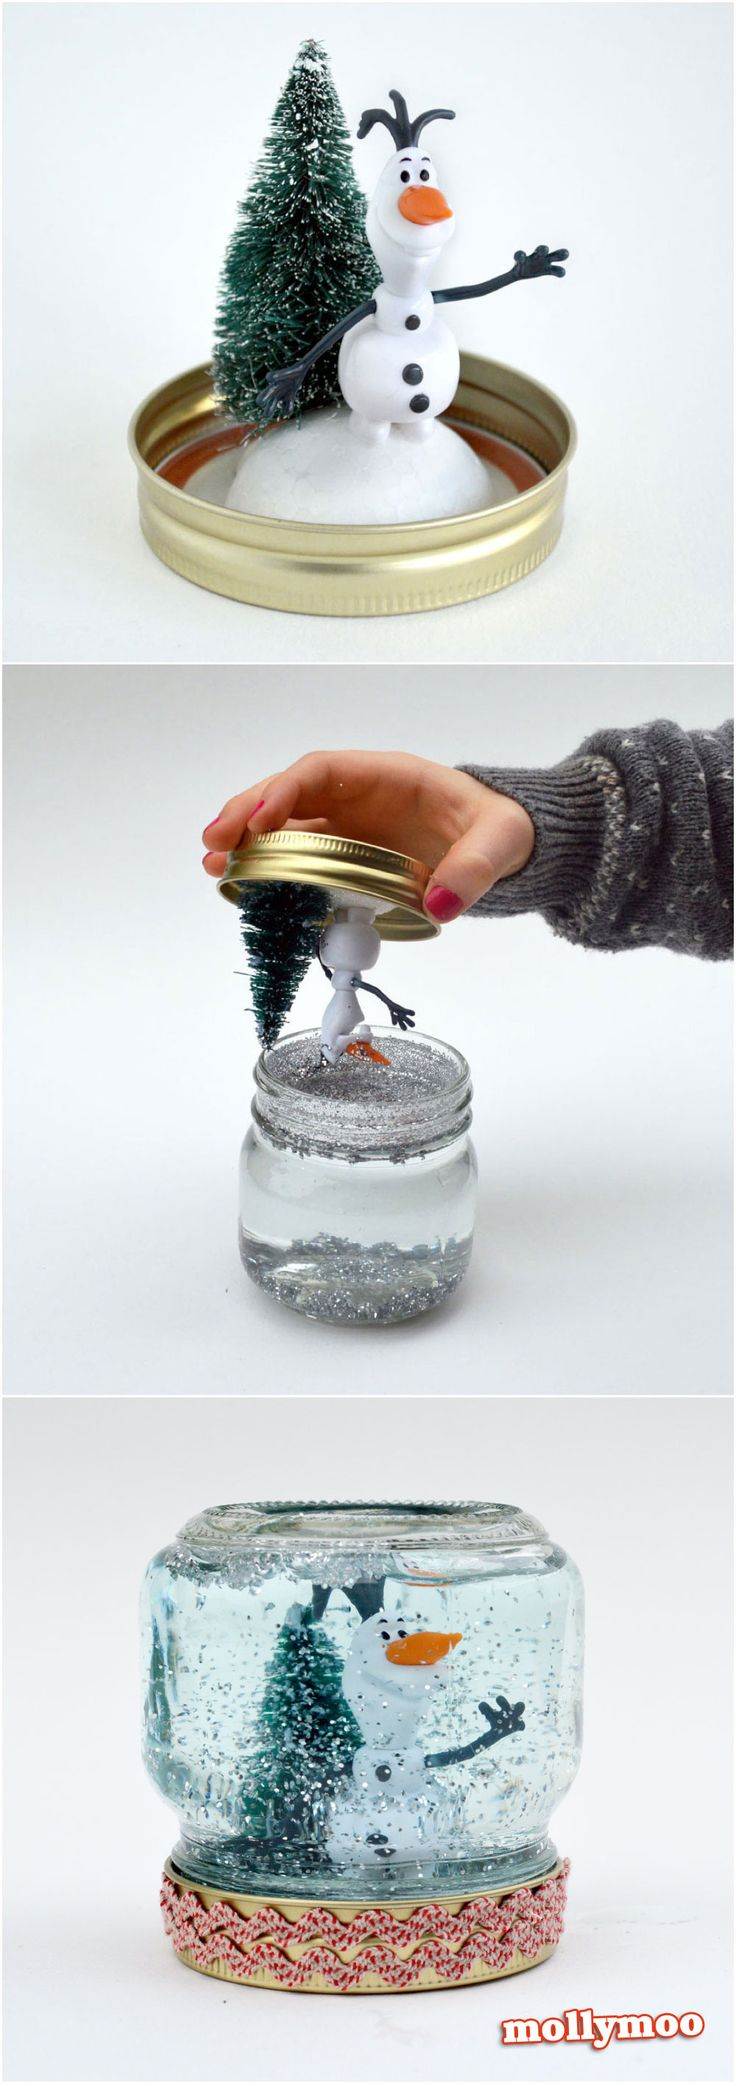 How to Make A Snow Globe - just 5 minutes from make to shake | MollyMoo with young kids...